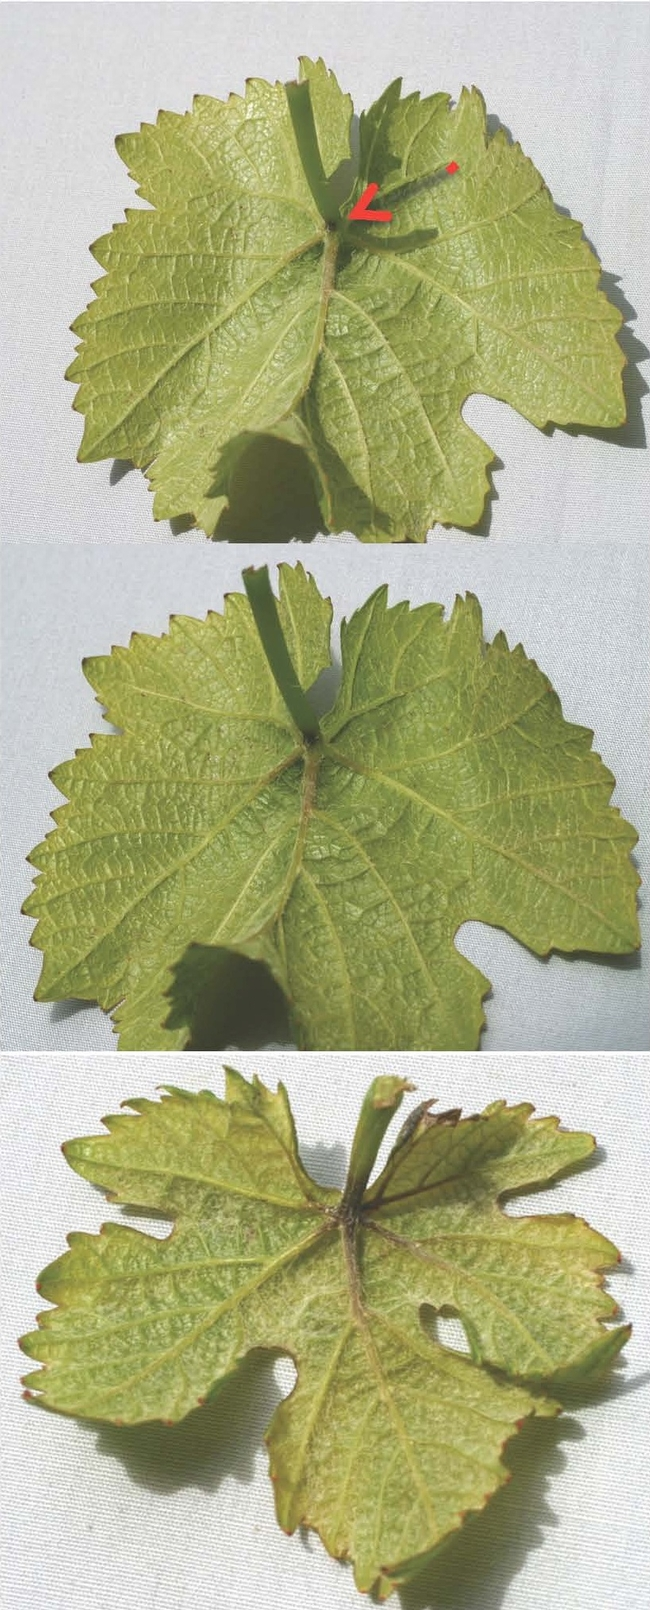 Note the progression of the dark necrotic tissue forming in the upper picture and increasing in the other picture in the apical end of the petiole and the base of the main leaf veins of these Pinot noir leaves.